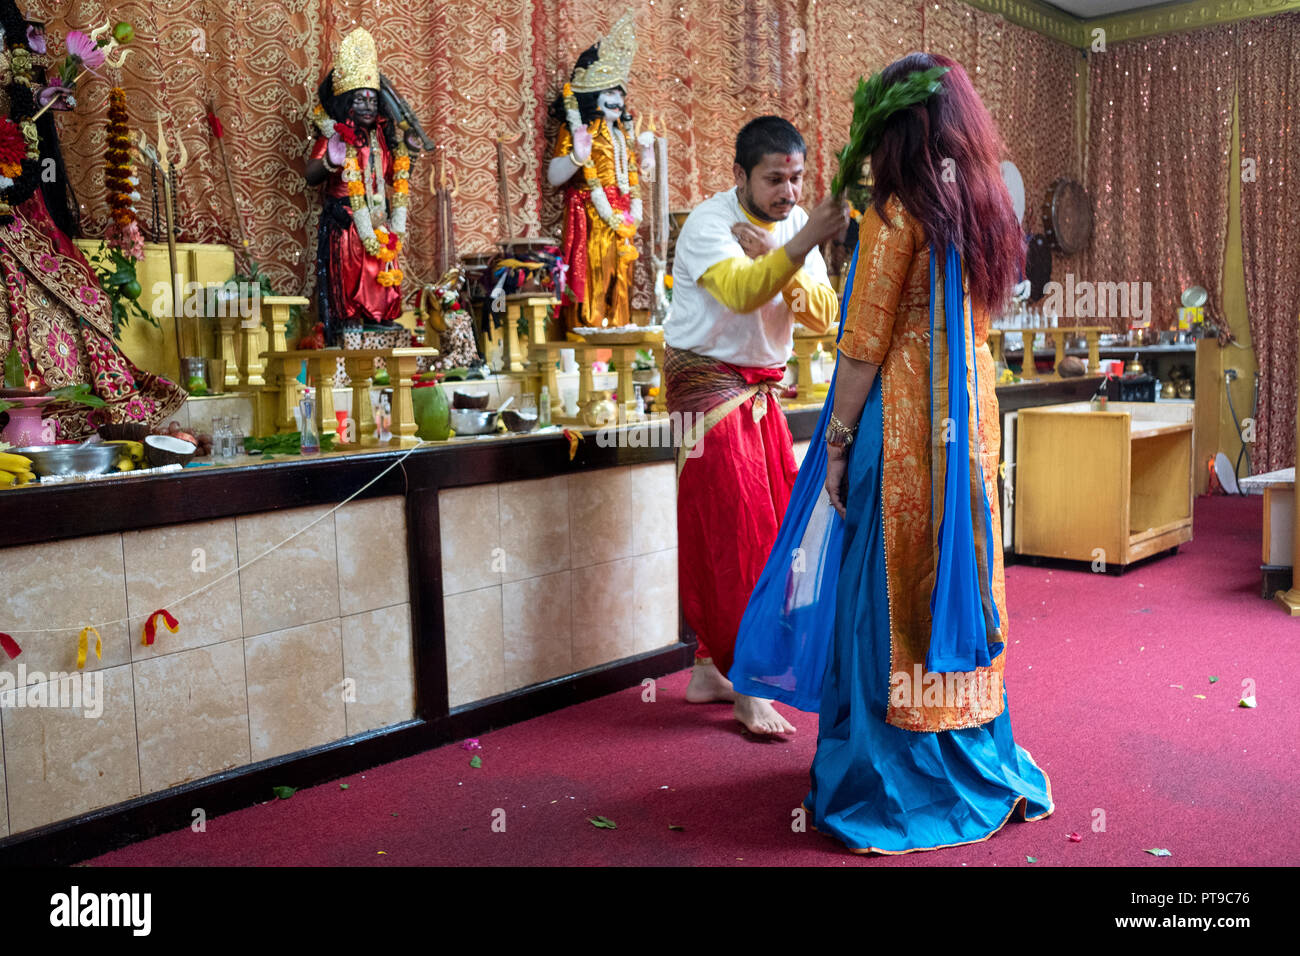 A woman in a beautiful sari gets a personal blessing & cleansing at a Hindu Mandir (temple) in Ozone Park, Queens, New York. - Stock Image